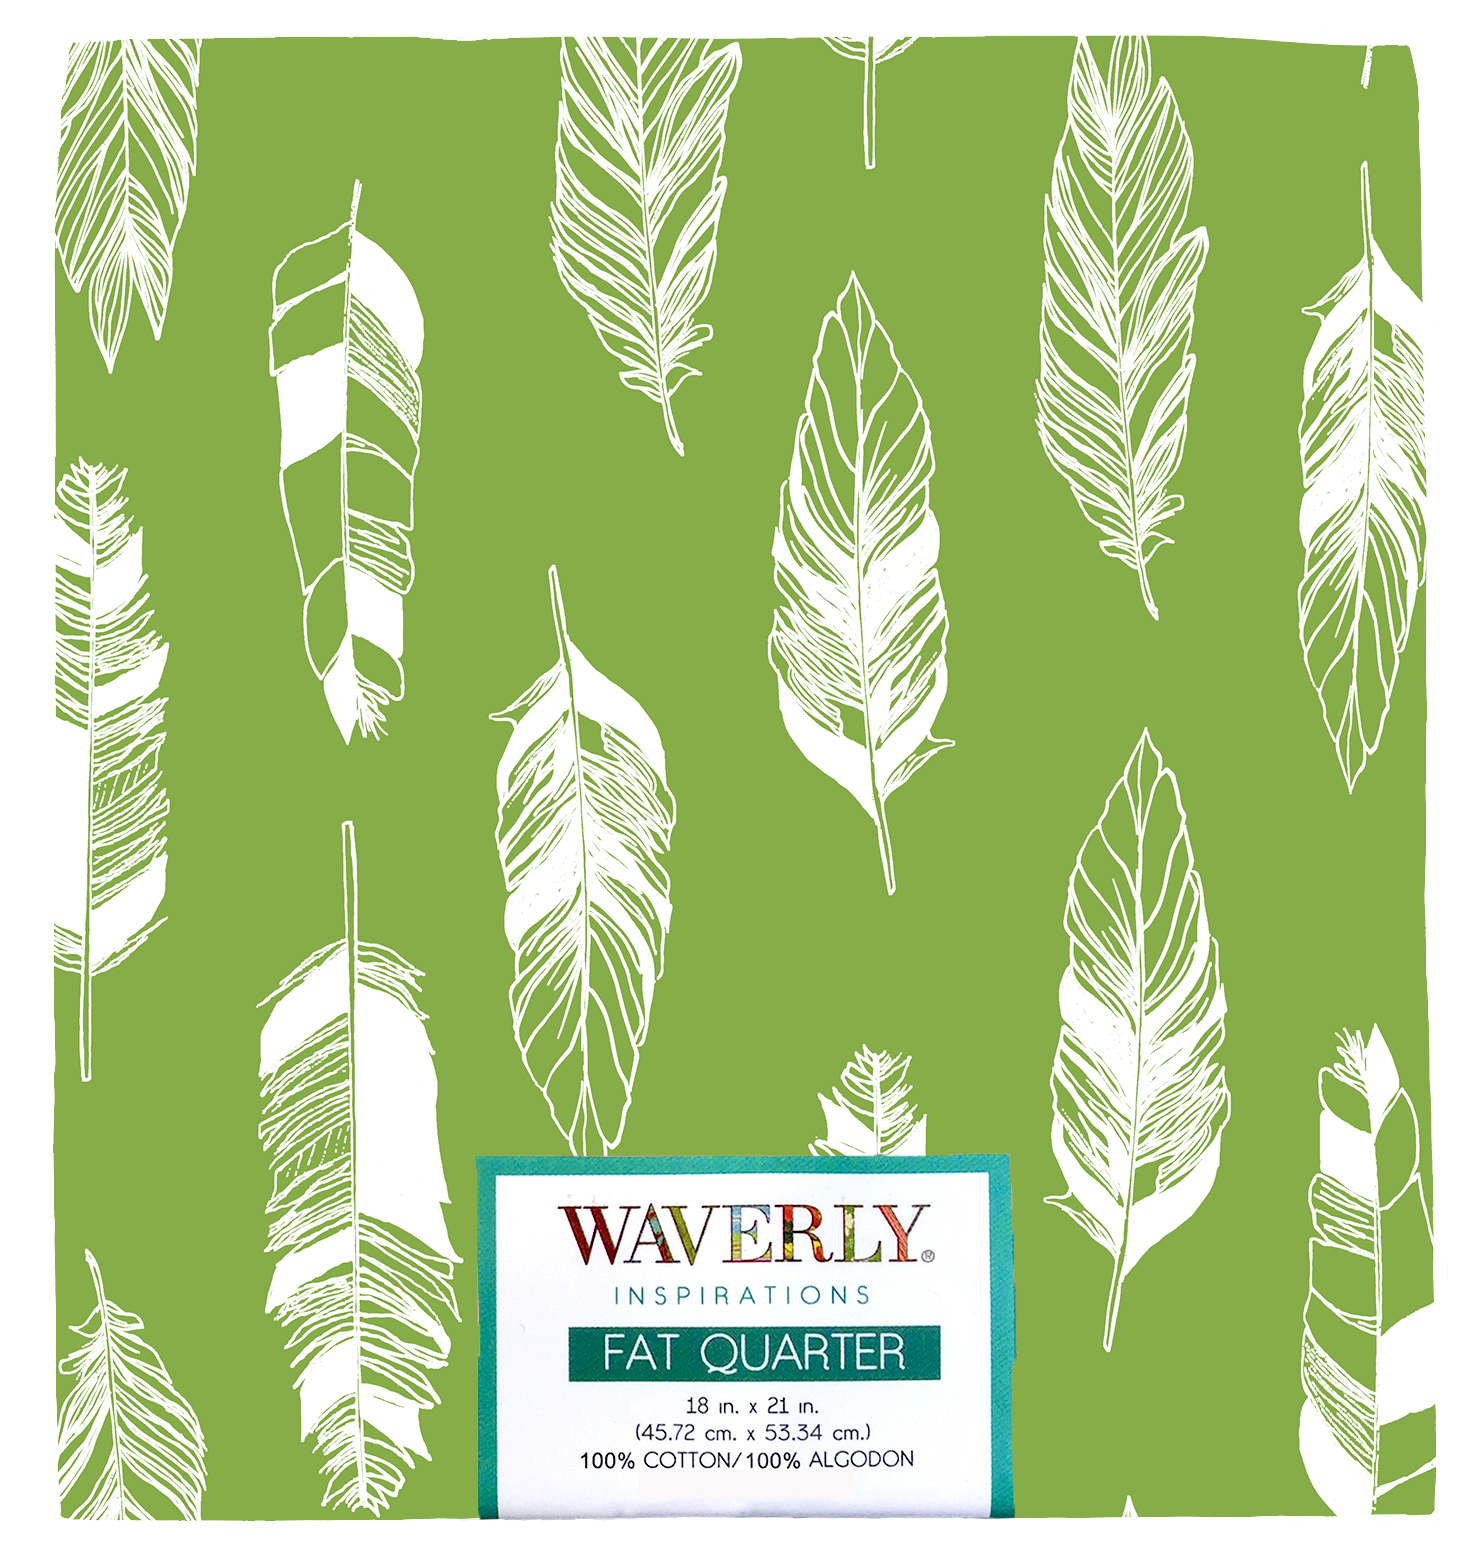 "Waverly Inspiration Fat Quarter FEATHER ONYX 100% Cotton, Feather Print Fabric, Quilting Fabric, Craft fabric, 18"" by 21"", 140 GSM"